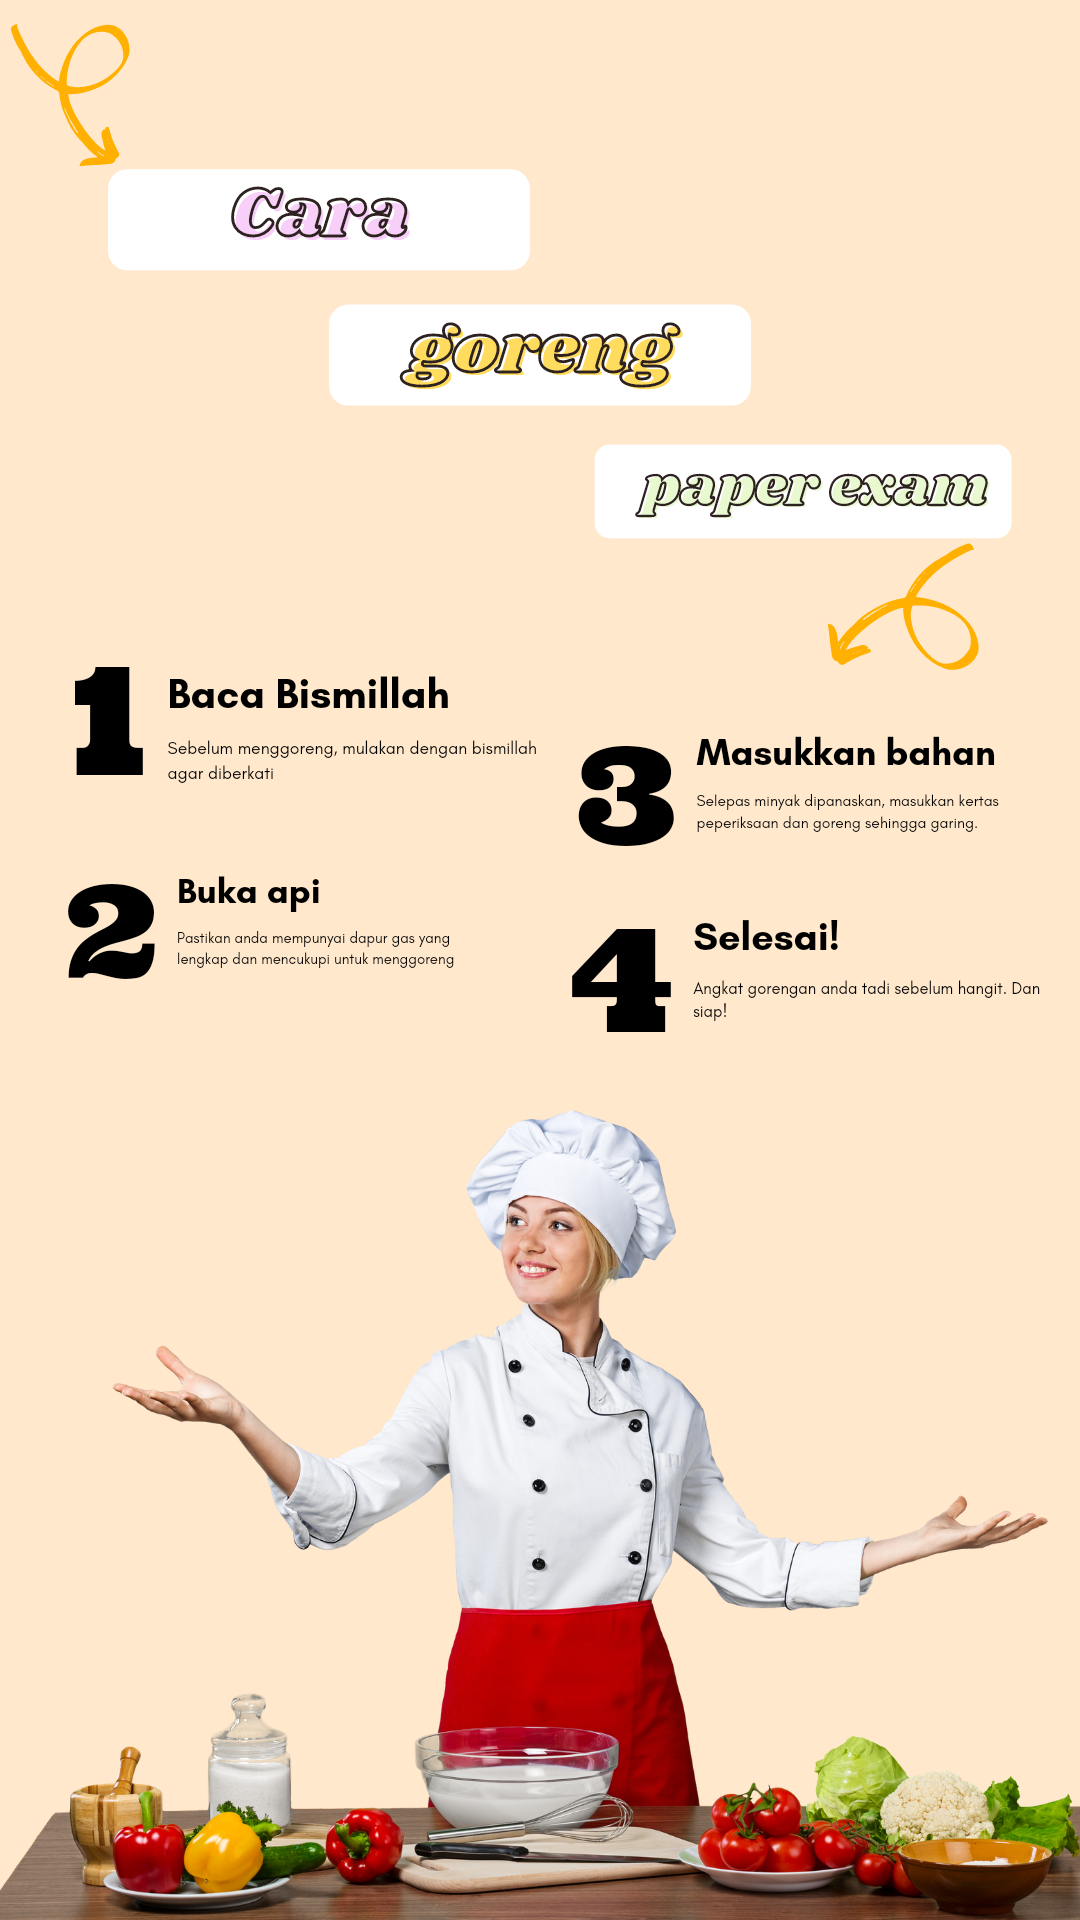 tips goreng paper exam